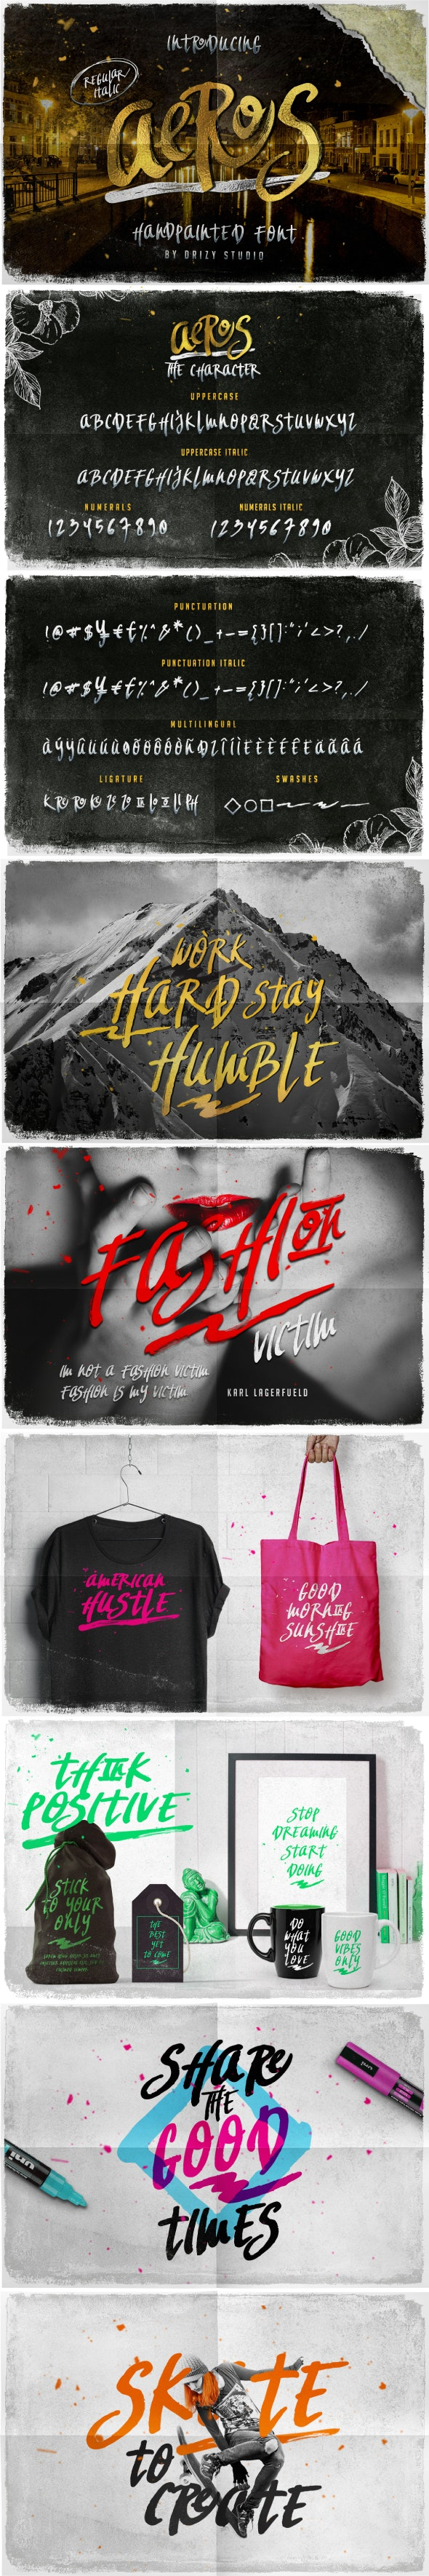 Aeros Handpainted Typeface - Fonts